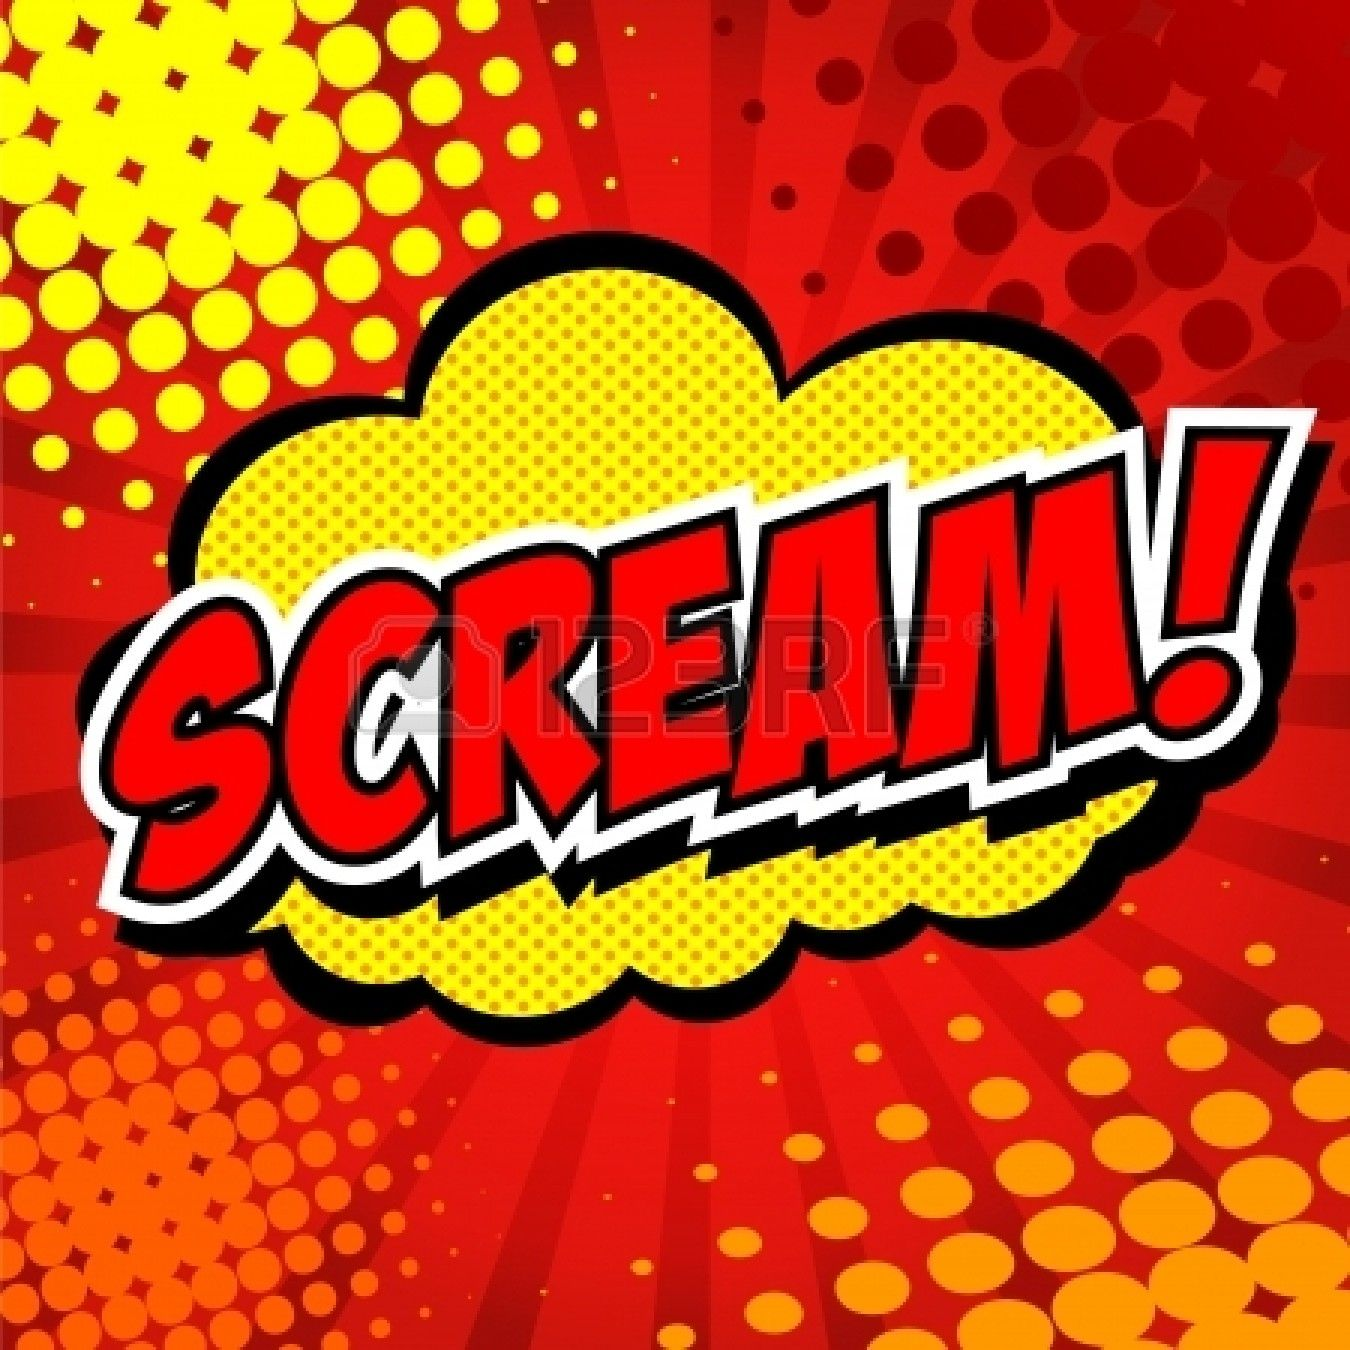 Scream Comic Speech Bubble, Cartoon by Jirawat Phueksriphan